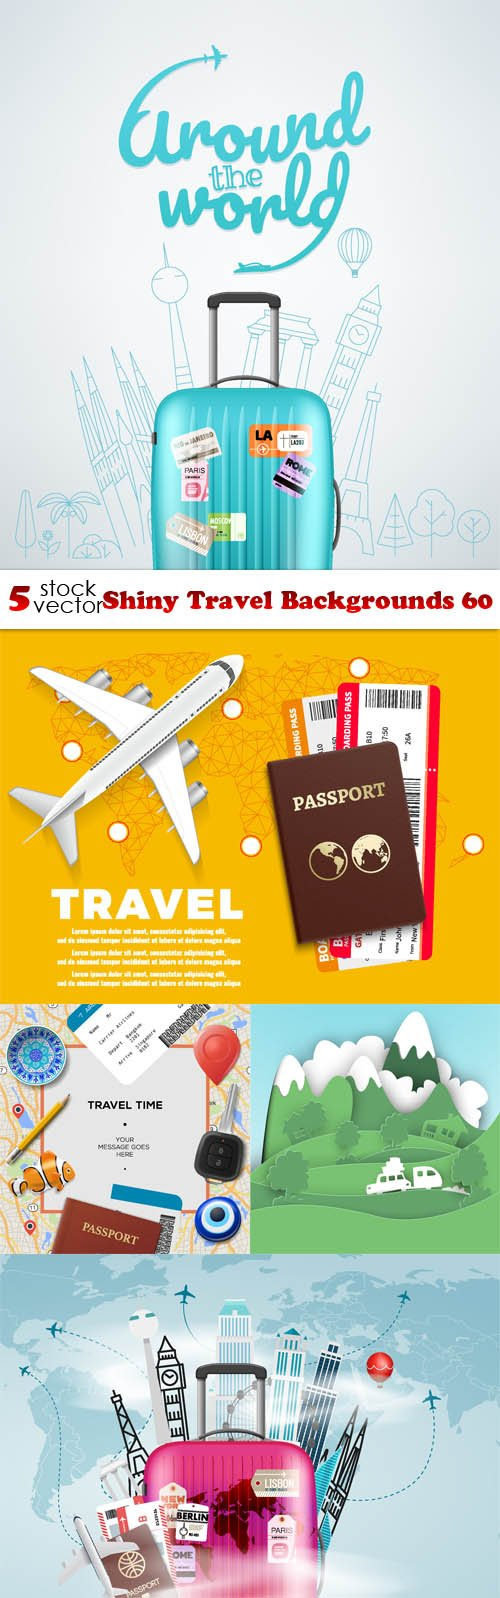 Vectors - Shiny Travel Backgrounds 60